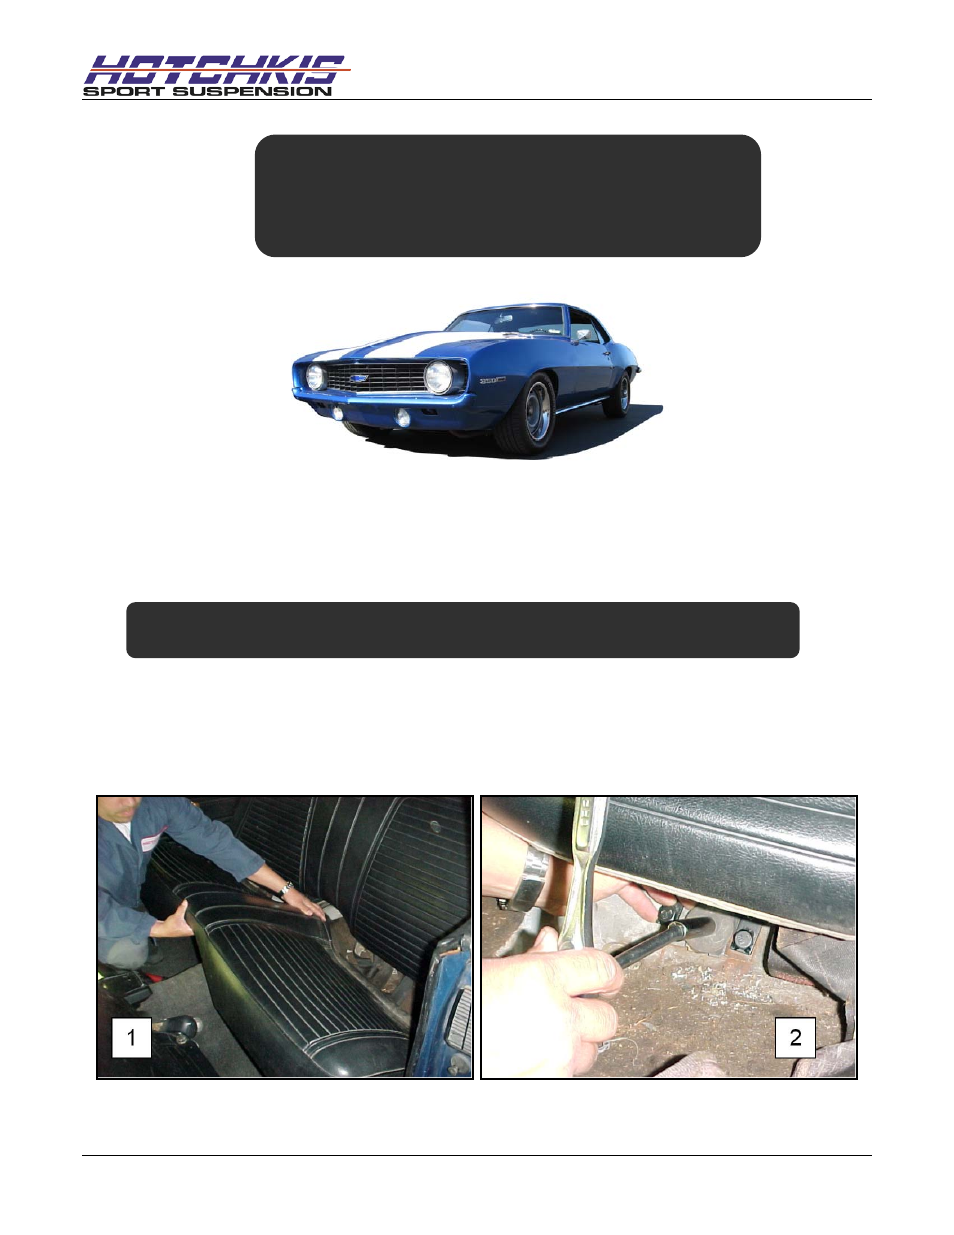 Hotchkis 1415 Chassis, Max Sway Bar Brace, 67-69 Camaro-Firebird F-Body  User Manual | 13 pages